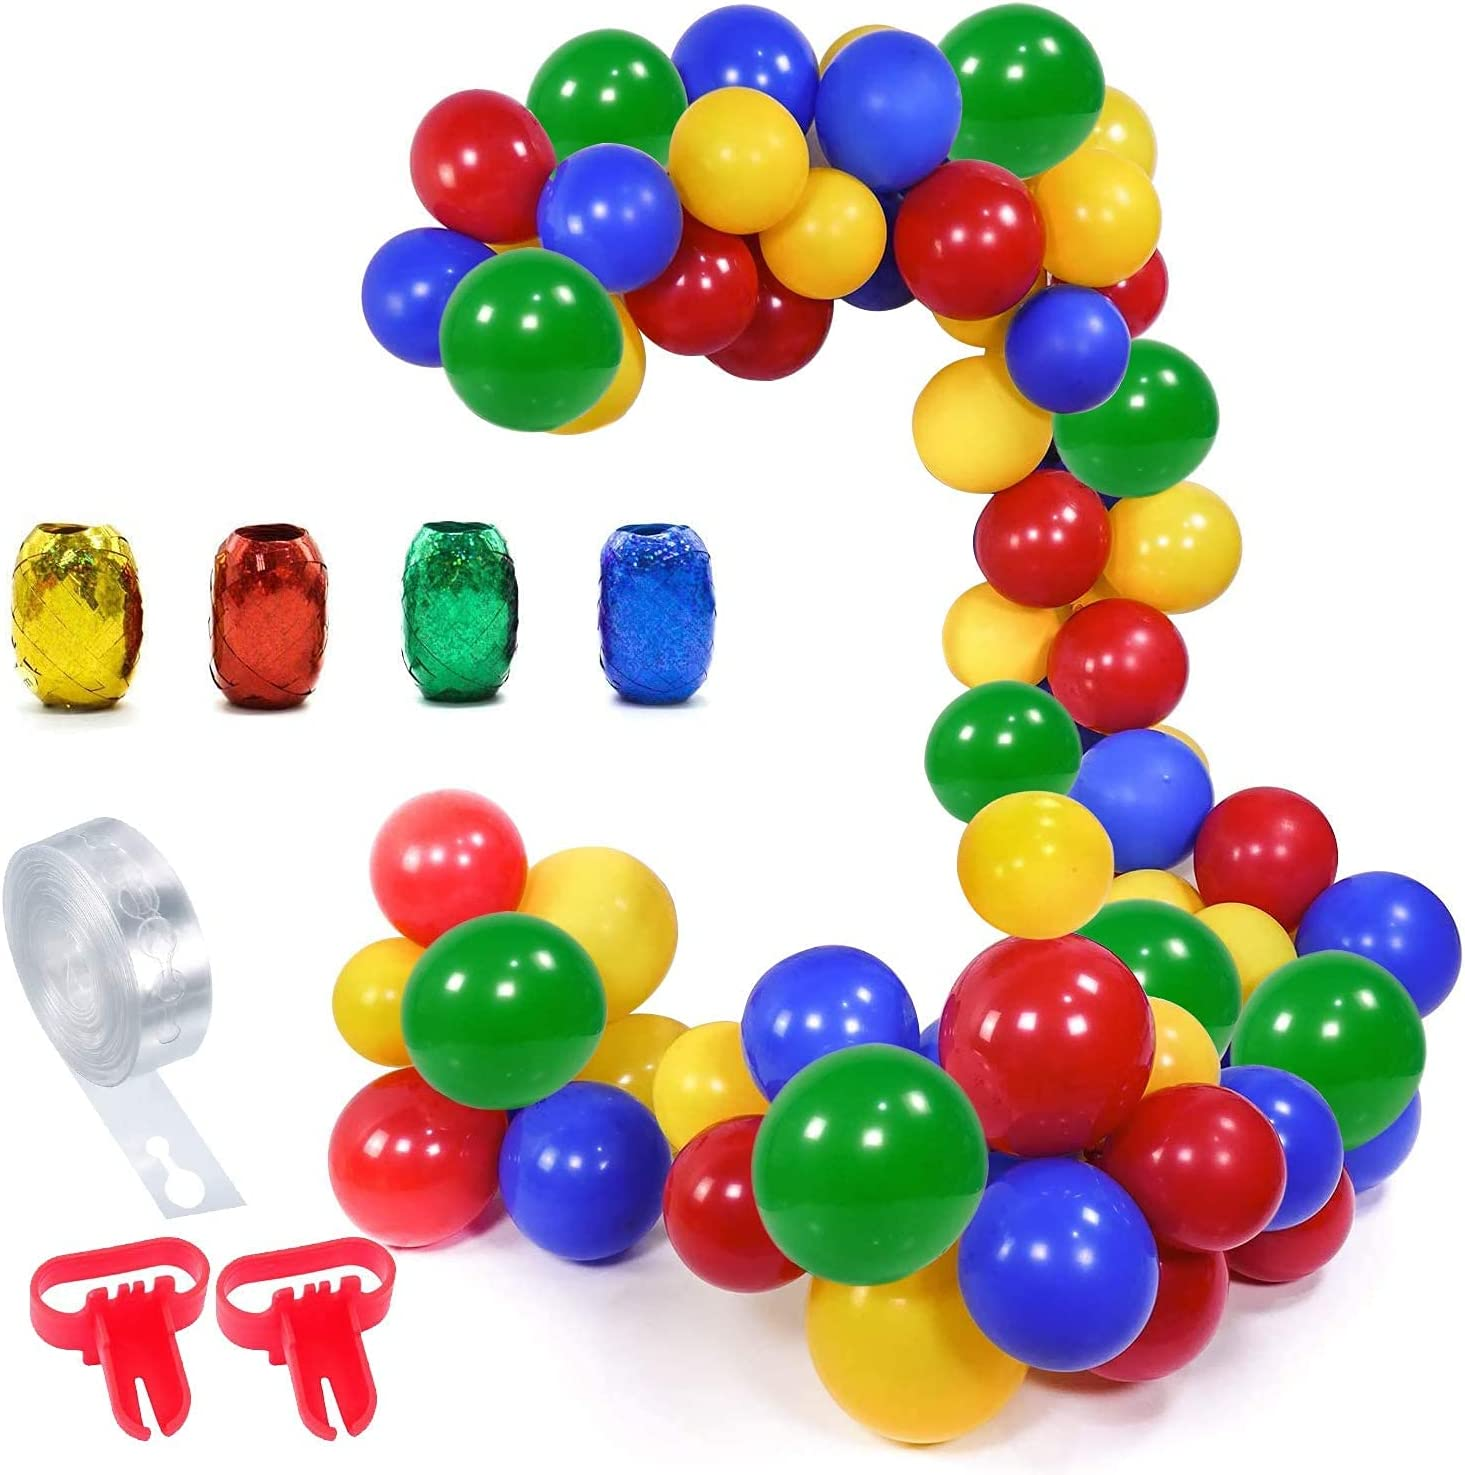 100PCS Balloon Arch Garland Kit for Boys Men, YANSION Red Blue Green Yellow Party Decorations with 16ft Latex Balloon Strip Tape, 2pcs Tying Tool for Birthday Graduations Engagements Themed Home Decor